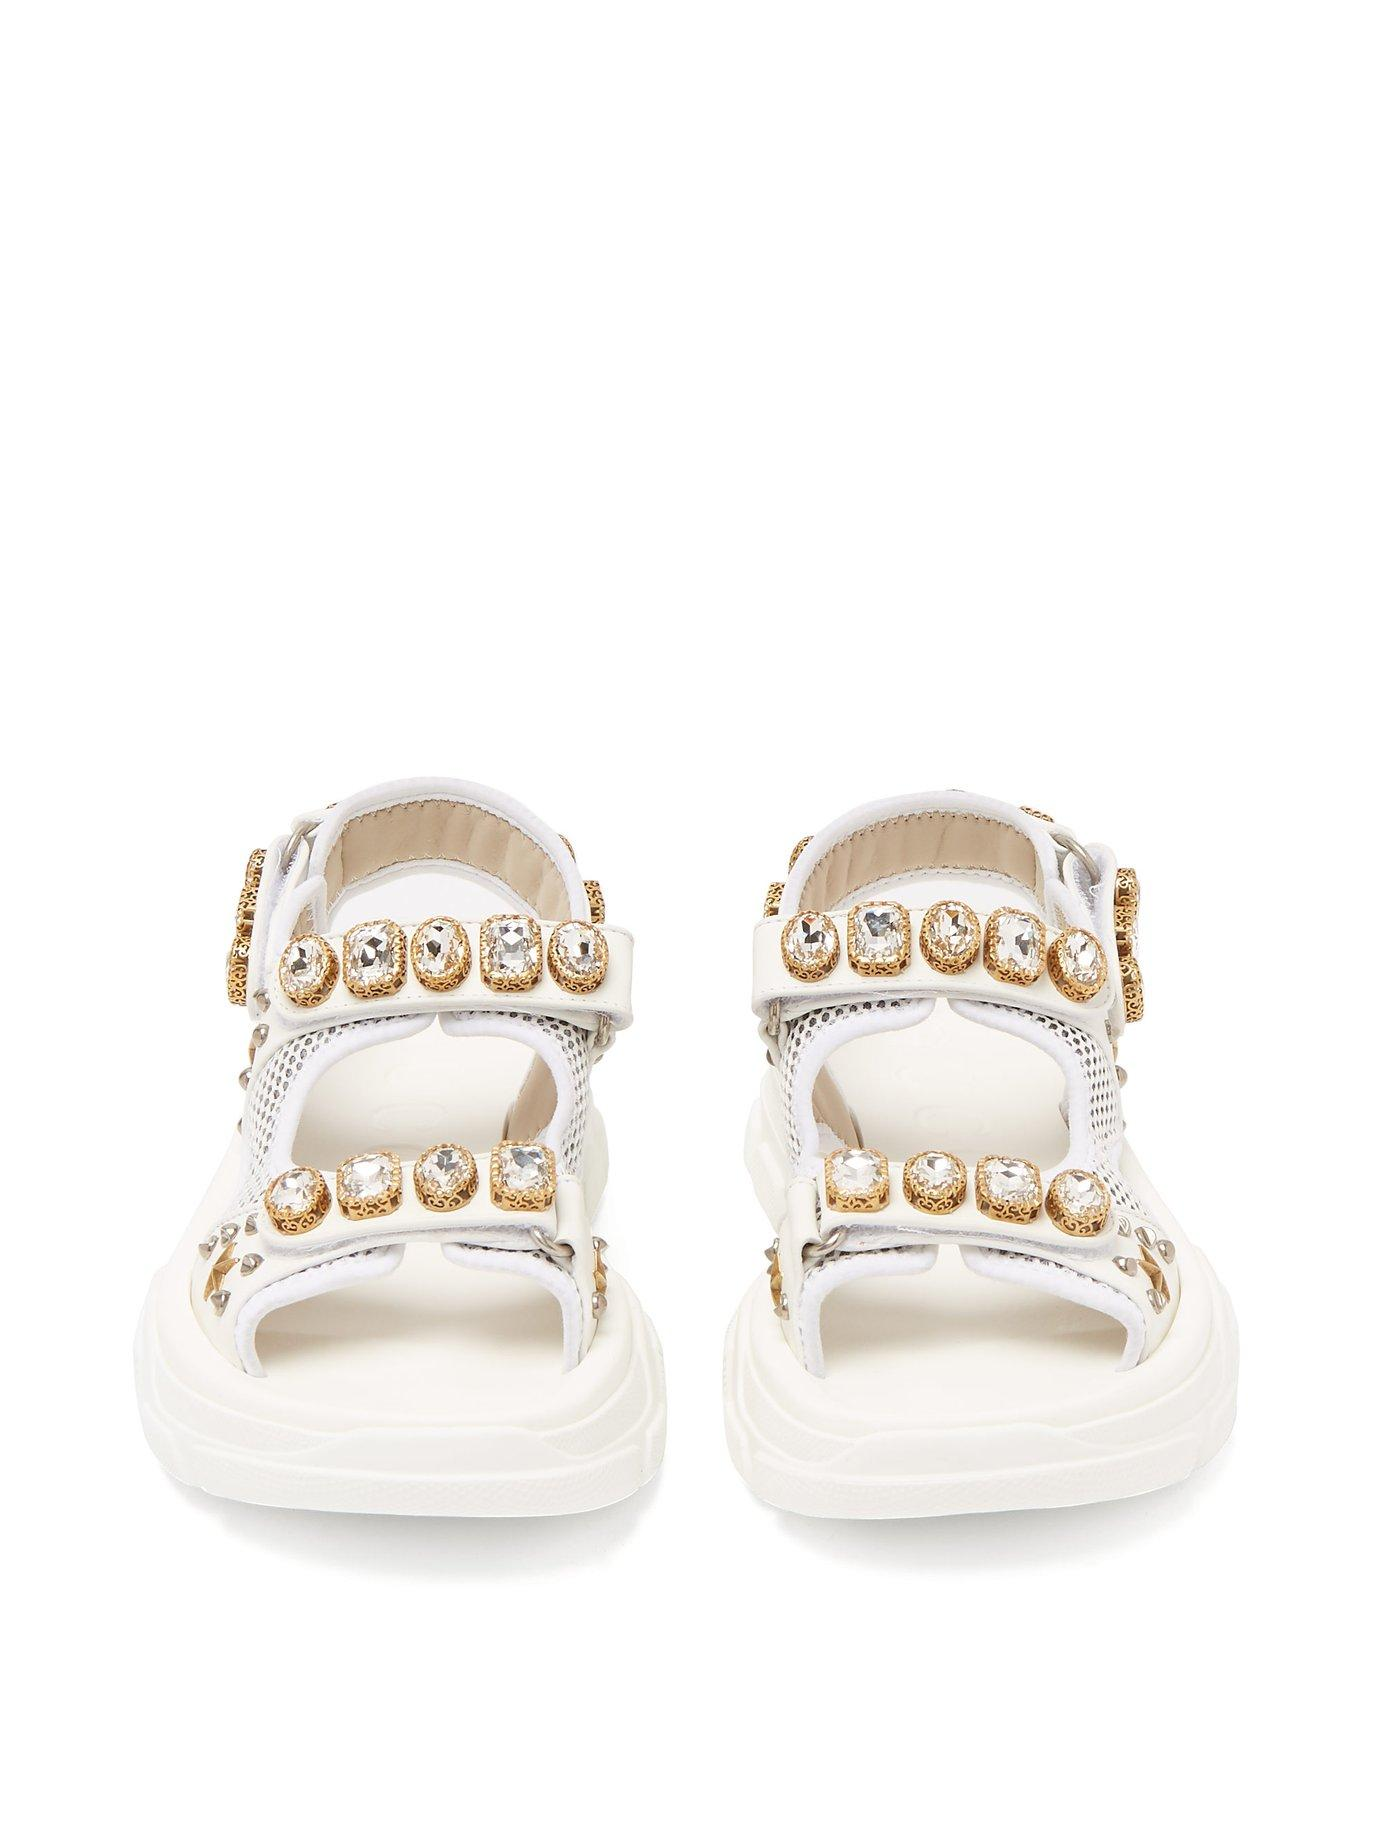 9760643c90d Gucci - White Crystal Embellished Leather And Mesh Sandal - Lyst. View  fullscreen